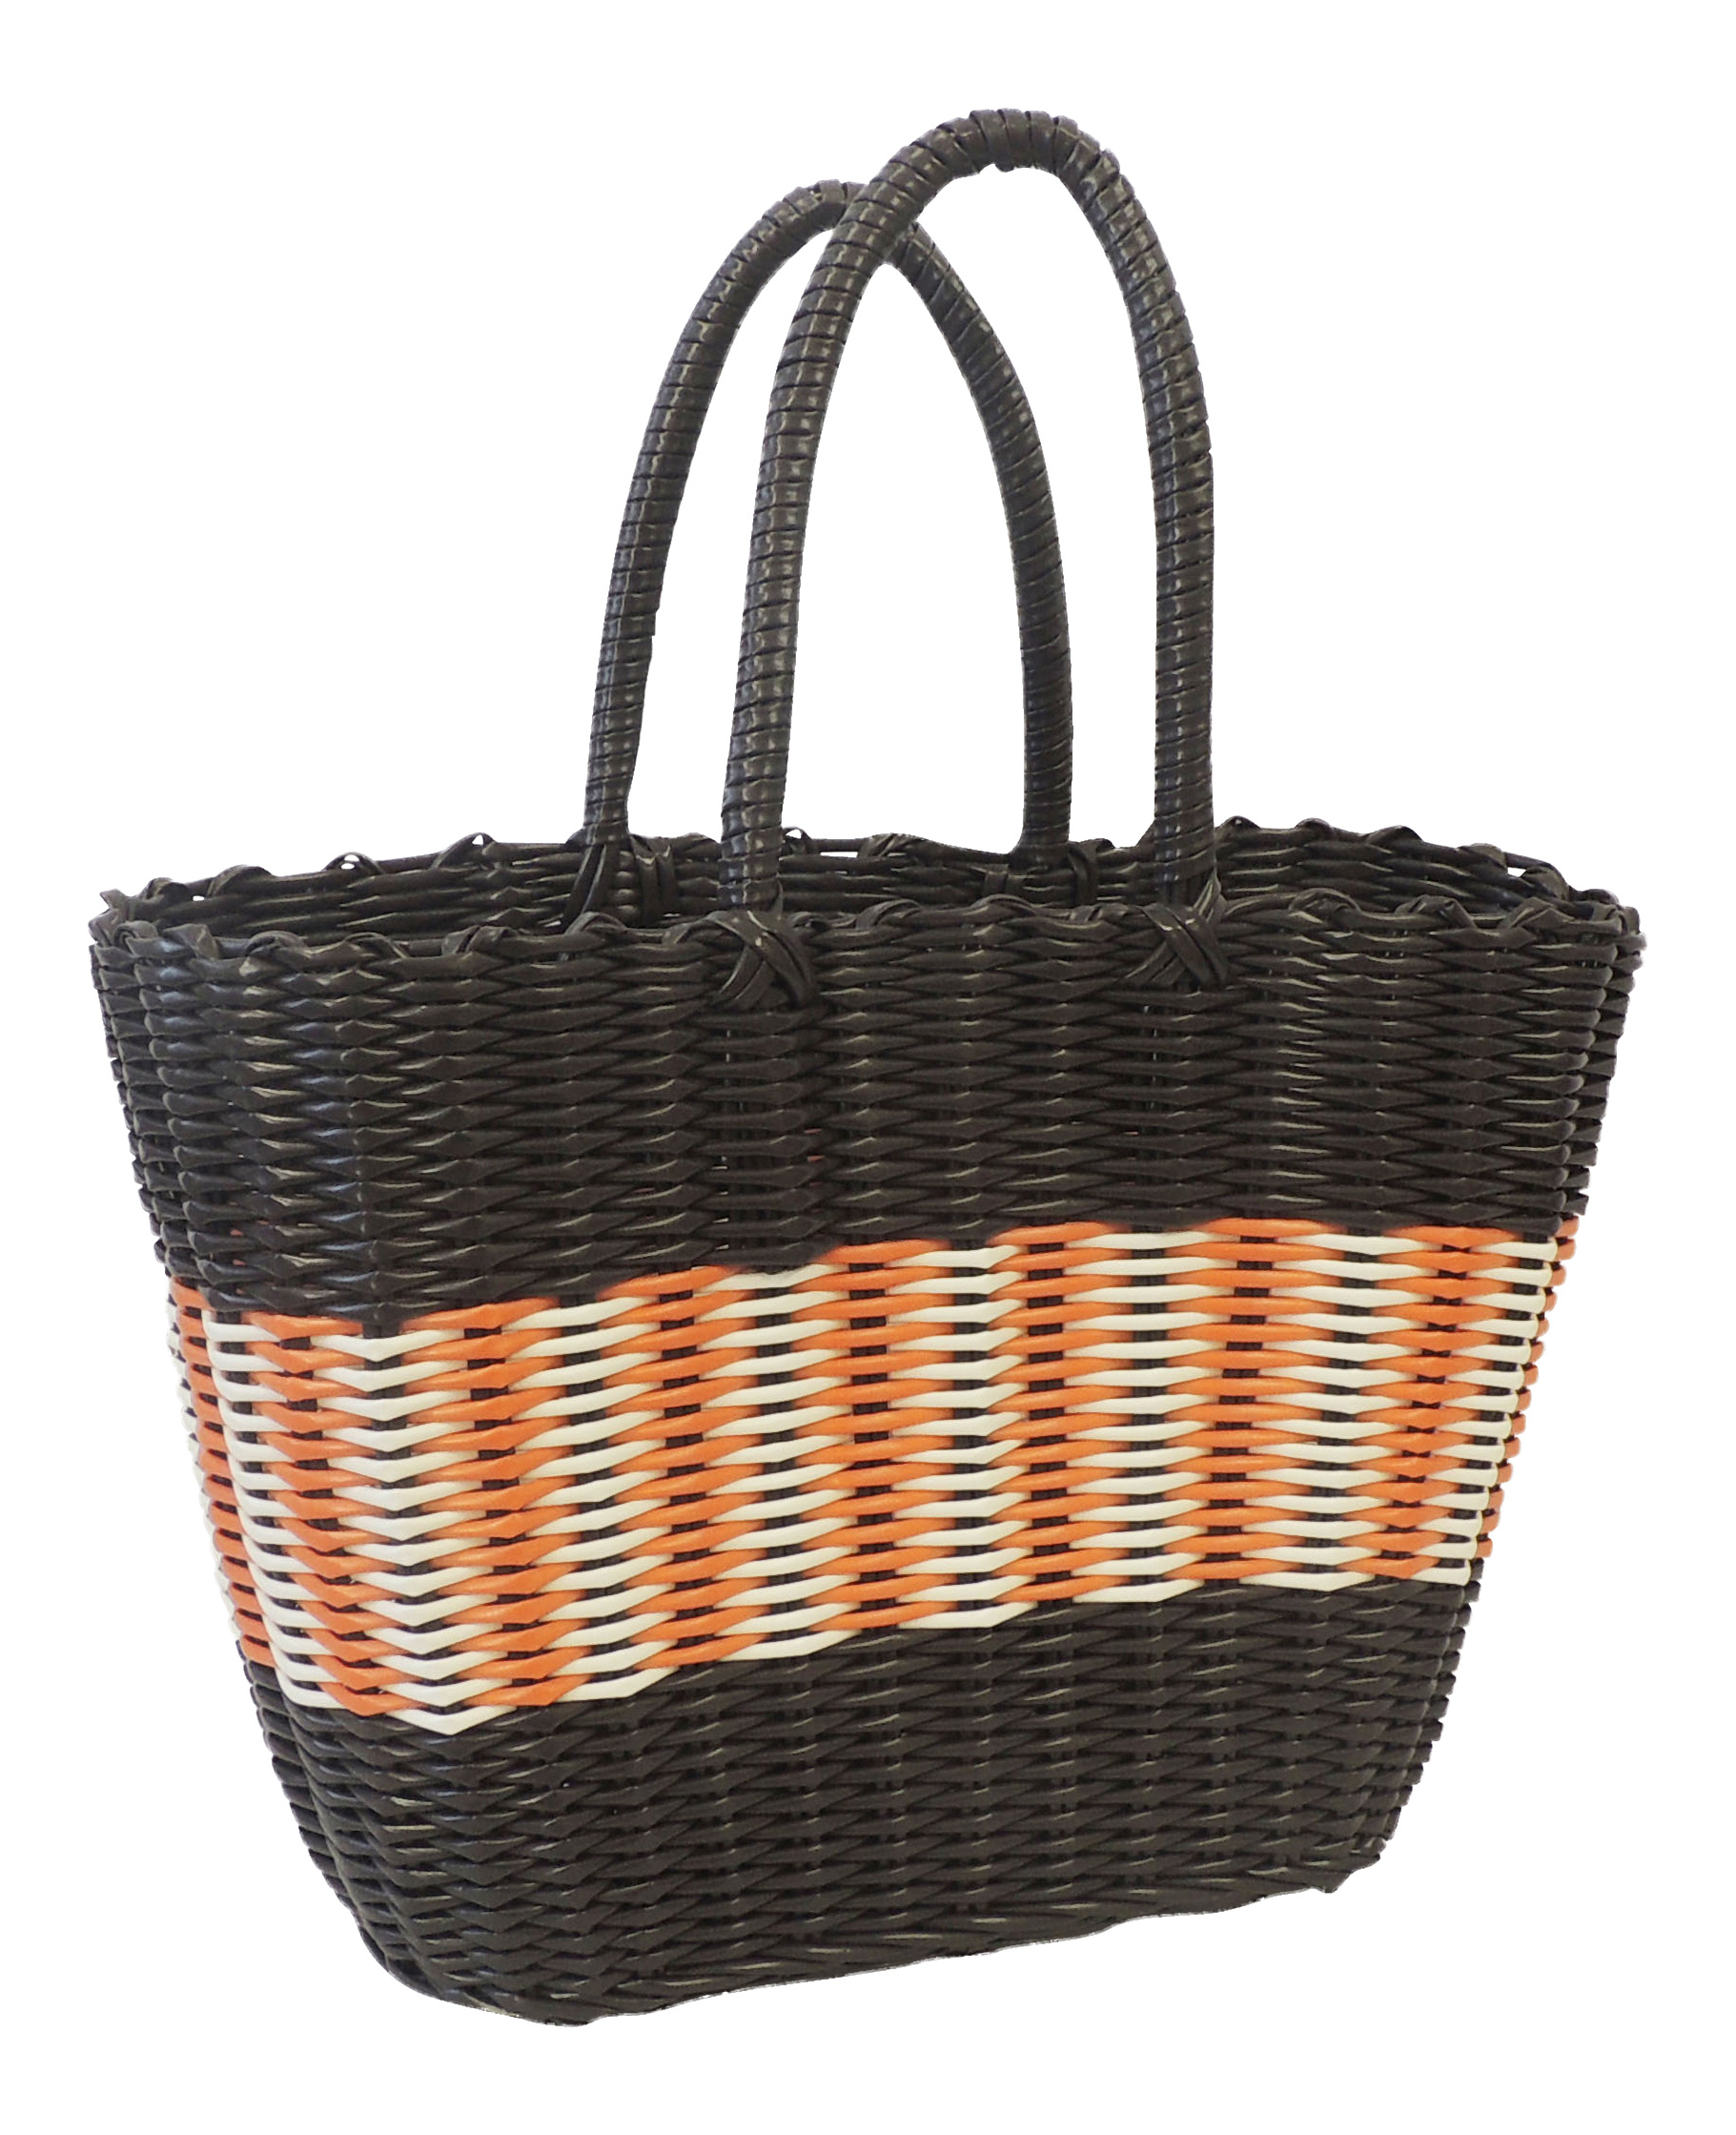 Woven Shopping Basket Uk : New retro s style brown plastic woven beach